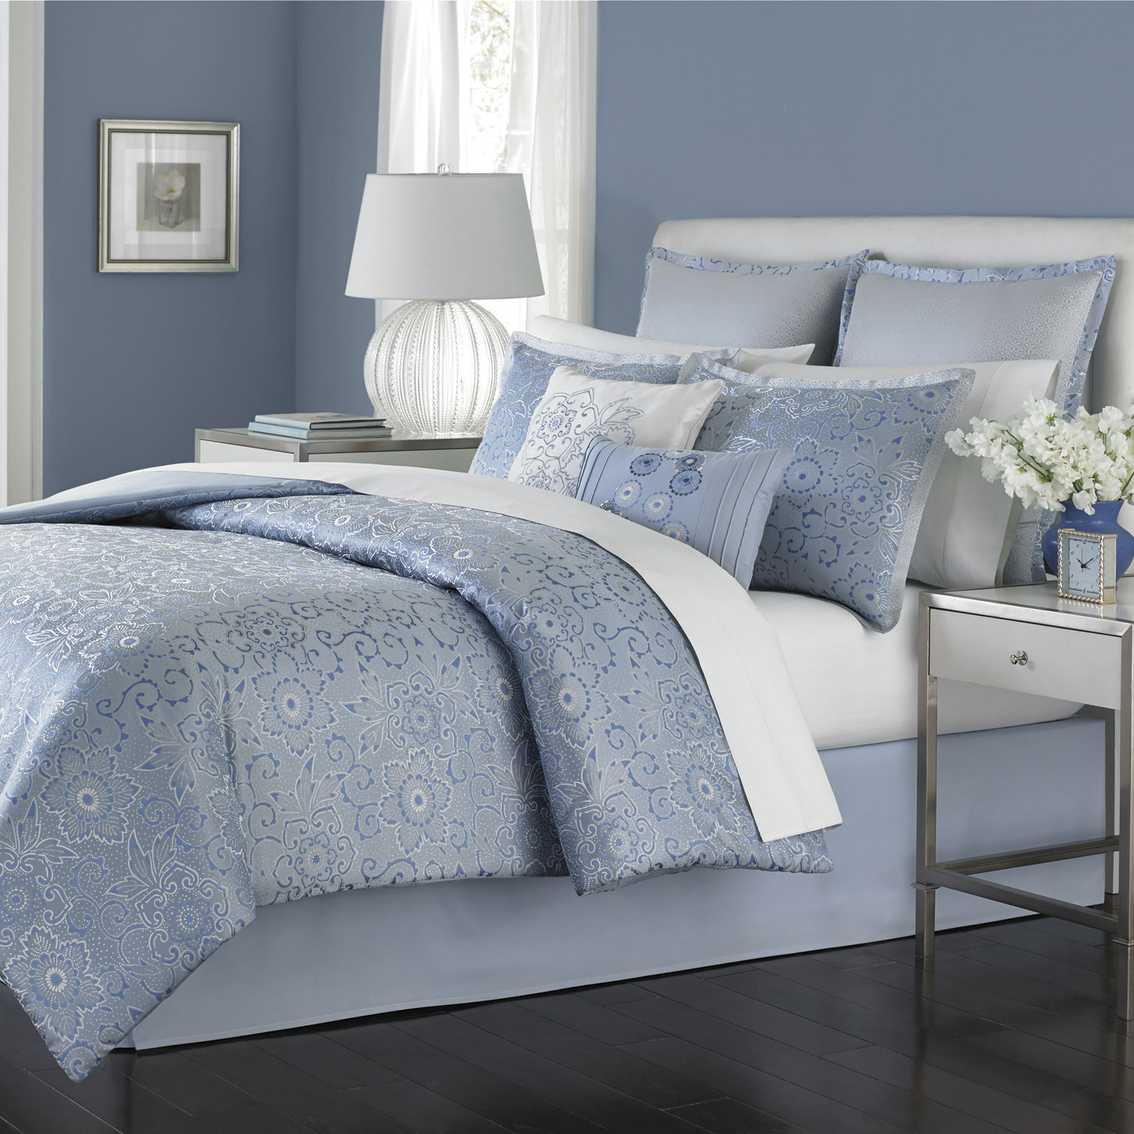 Martha Stewart Collection Periwinkle Dream Comforter Set